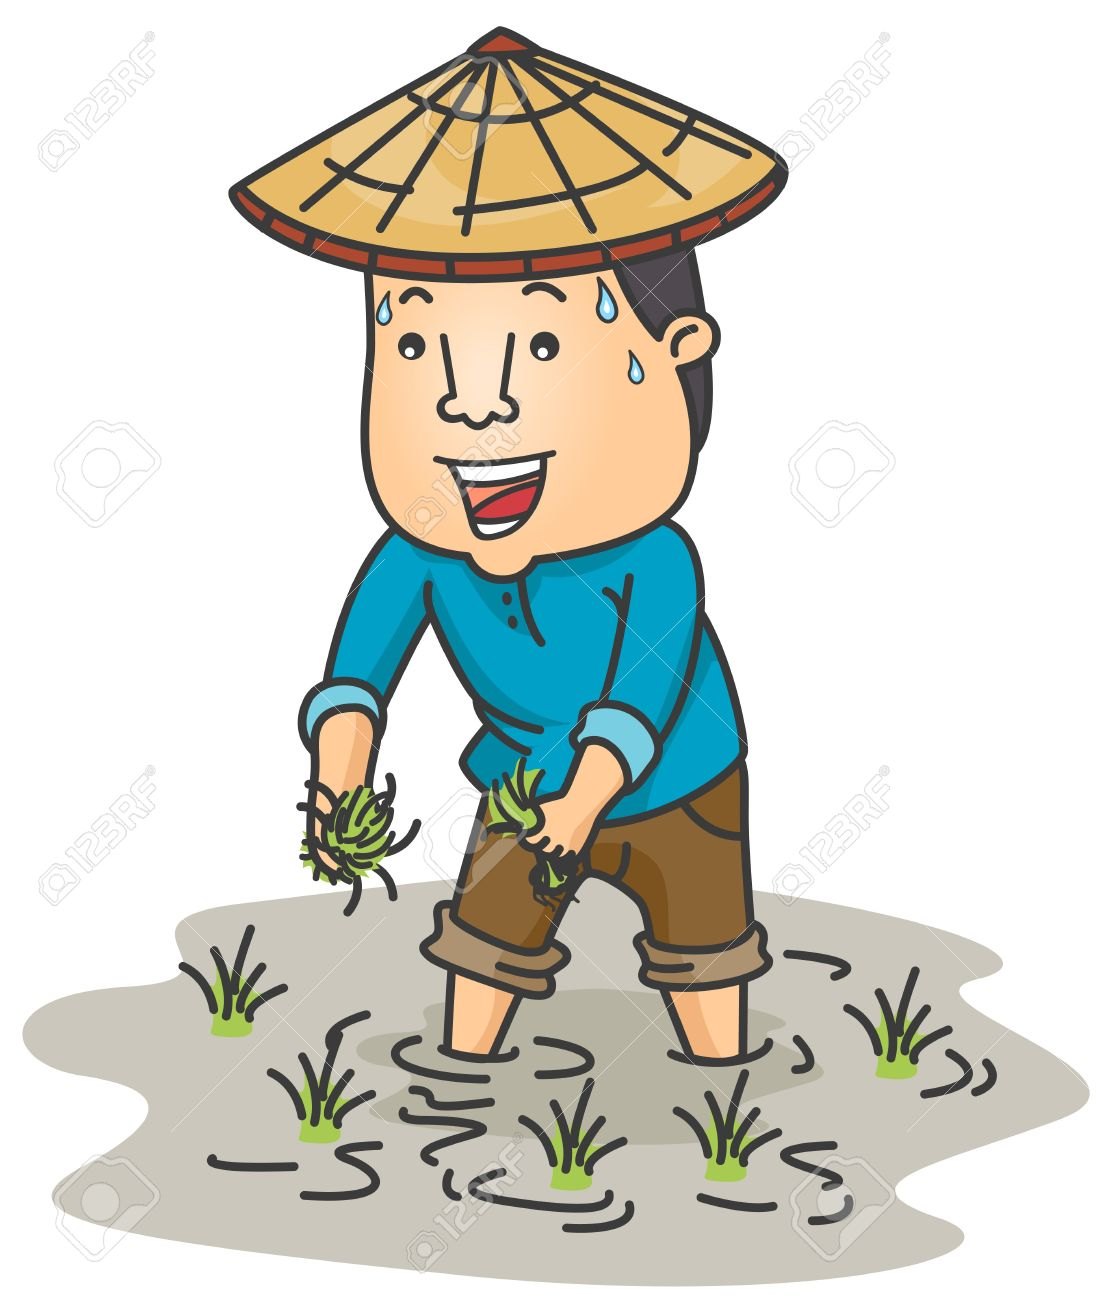 Cultivation clipart svg freeuse Cultivation clipart 4 » Clipart Station svg freeuse